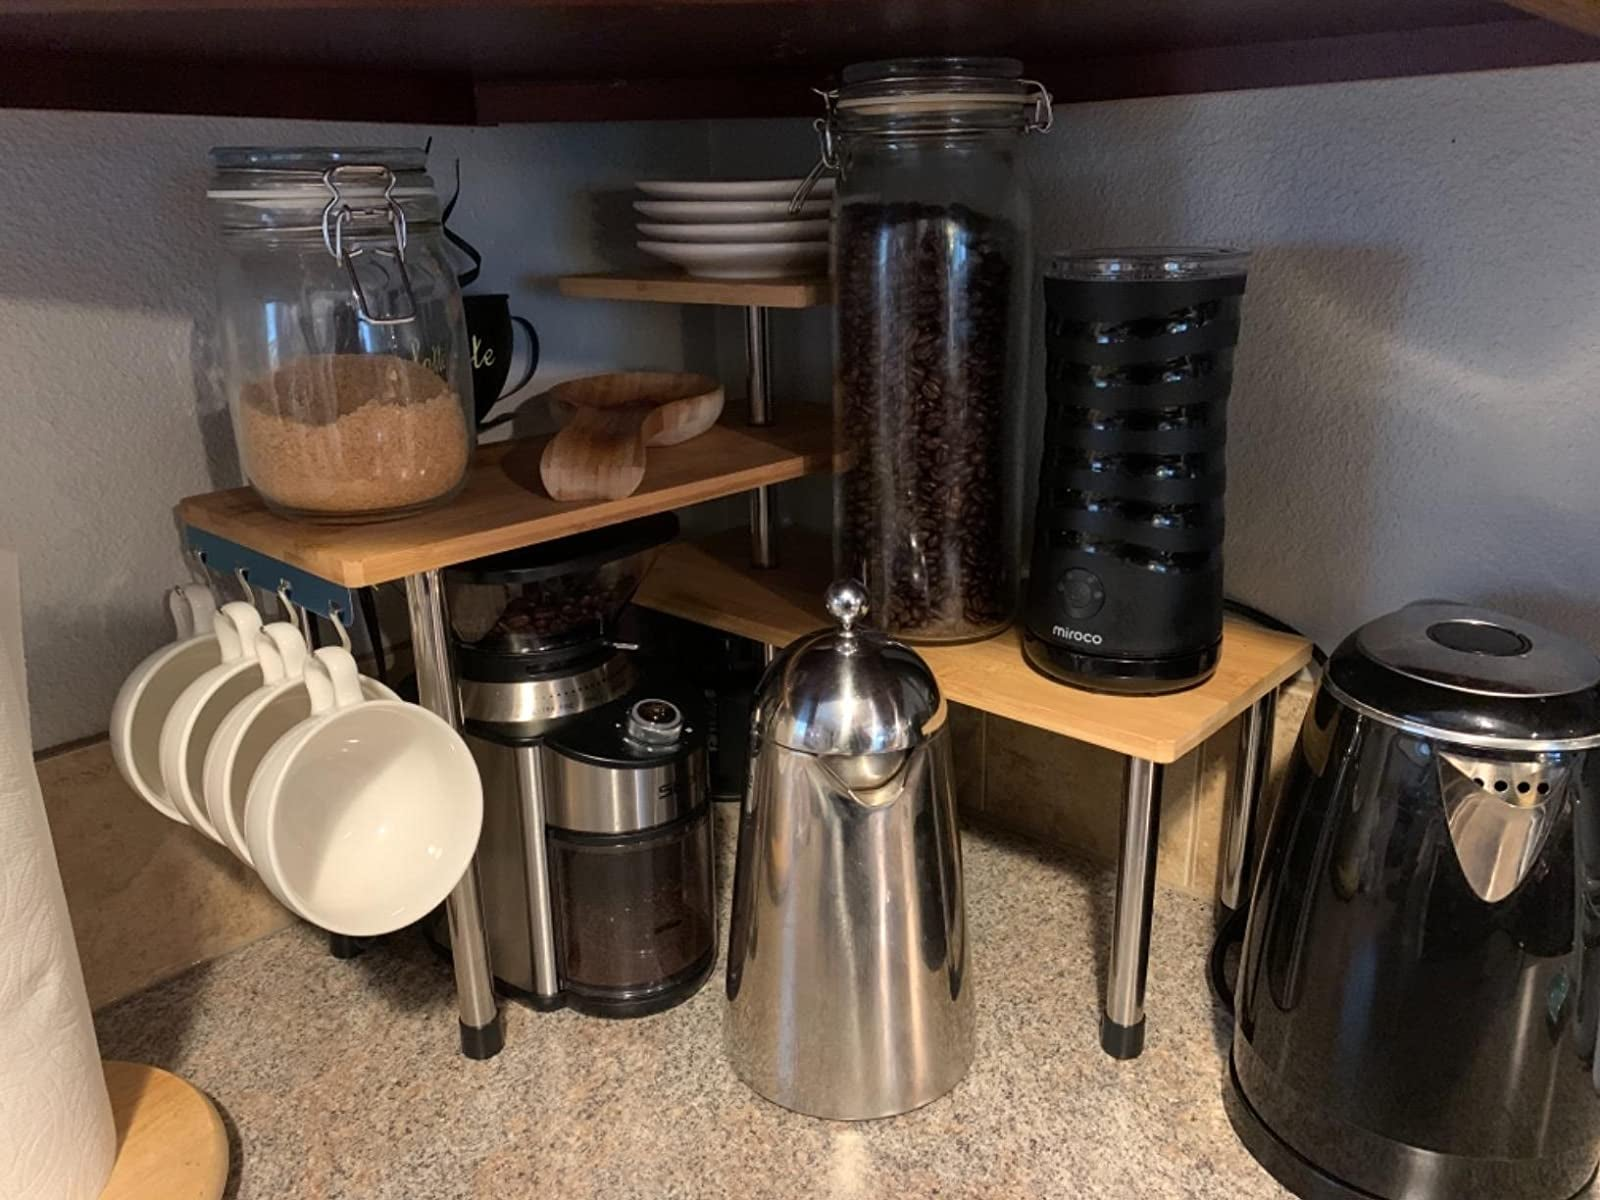 a reviewer's three-tier bamboo shelf holding coffee supplies and mugs